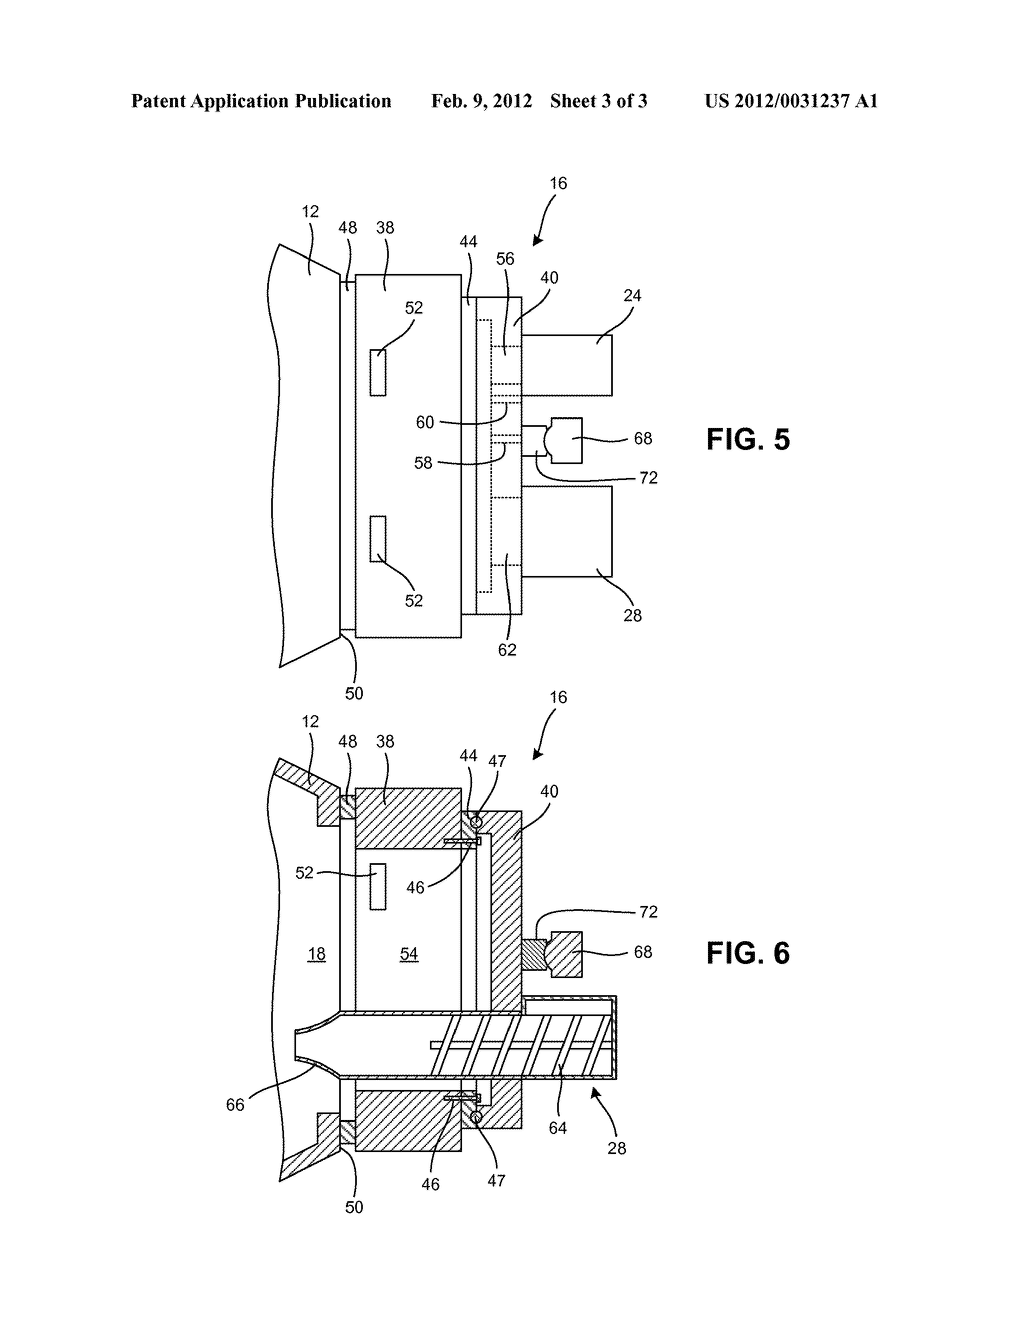 Aluminum Furnace Schematic Wiring Library Tilting Rotary System And Methods Of Recovery Diagram Image